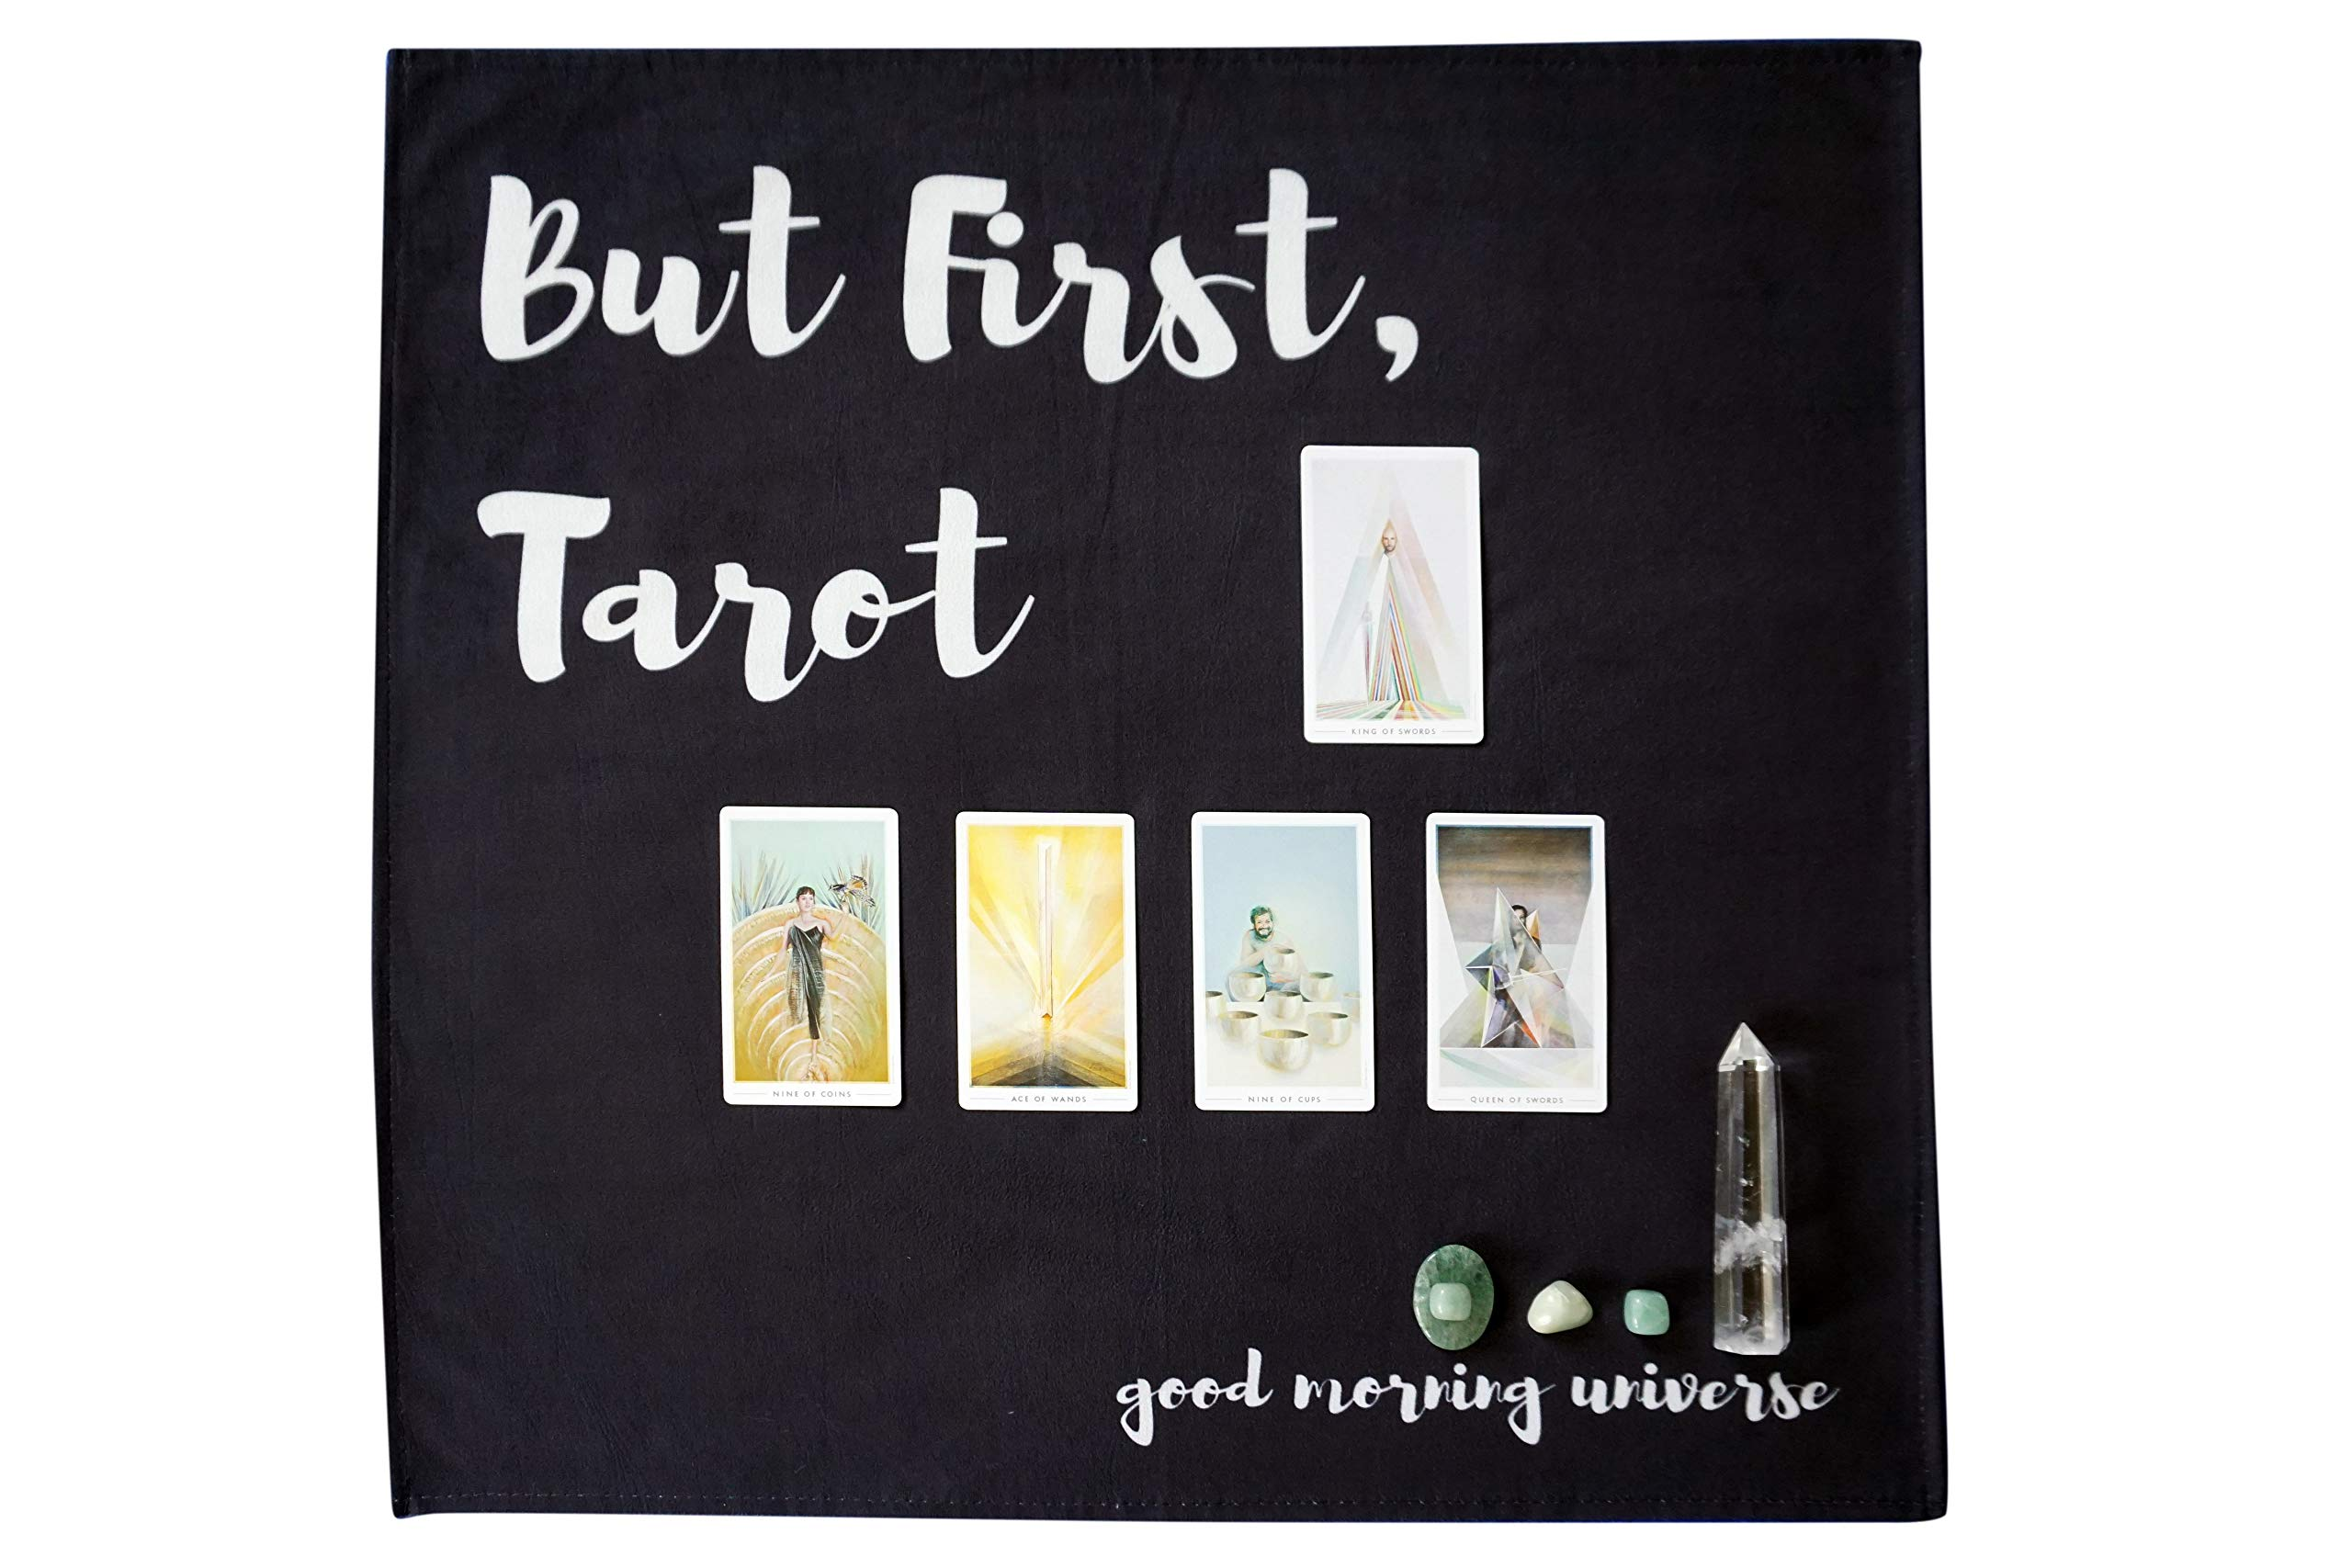 Altar Tarot Cloth with Good Morning Universe (Large, Black, 24 inches x 24 inches) by Hidden Crystal Tarot (Image #2)